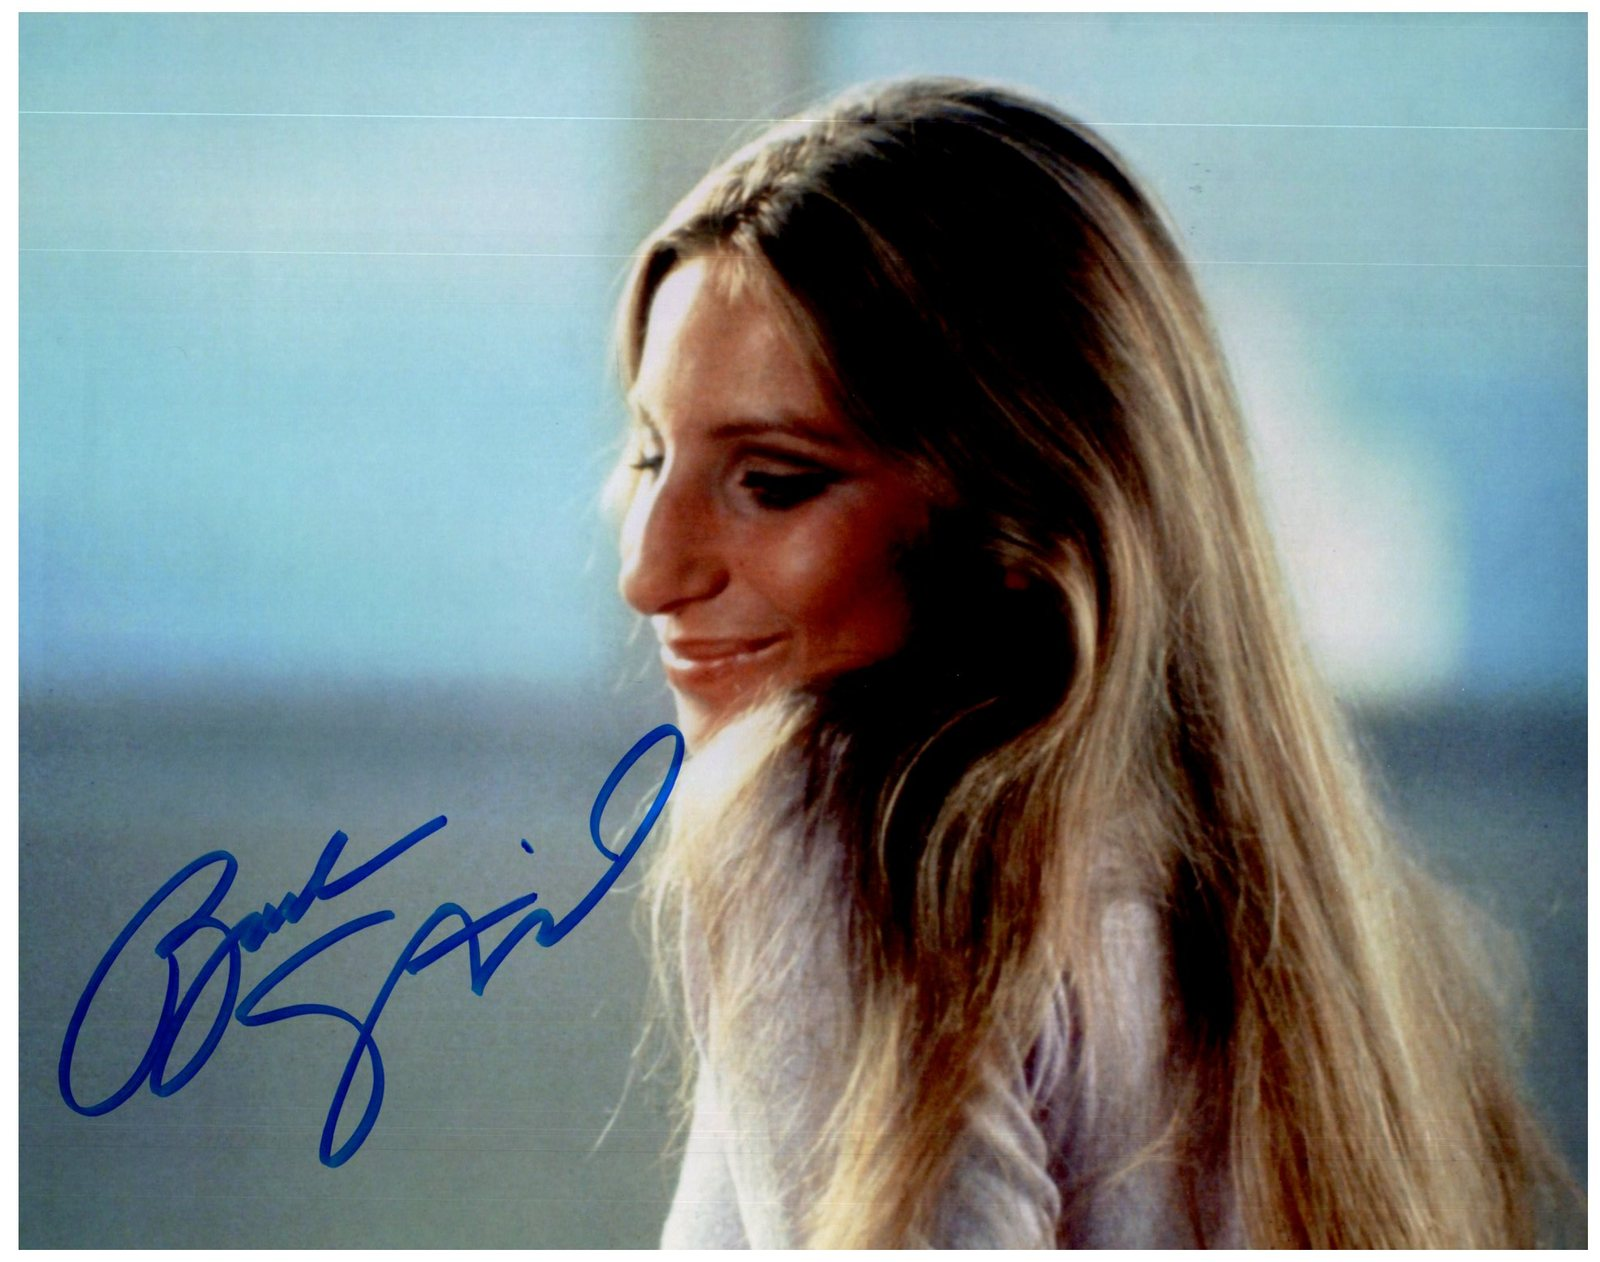 BARBRA STREISAND Signed Autographed 8X10 Photo w/ Certificate of Authenticity